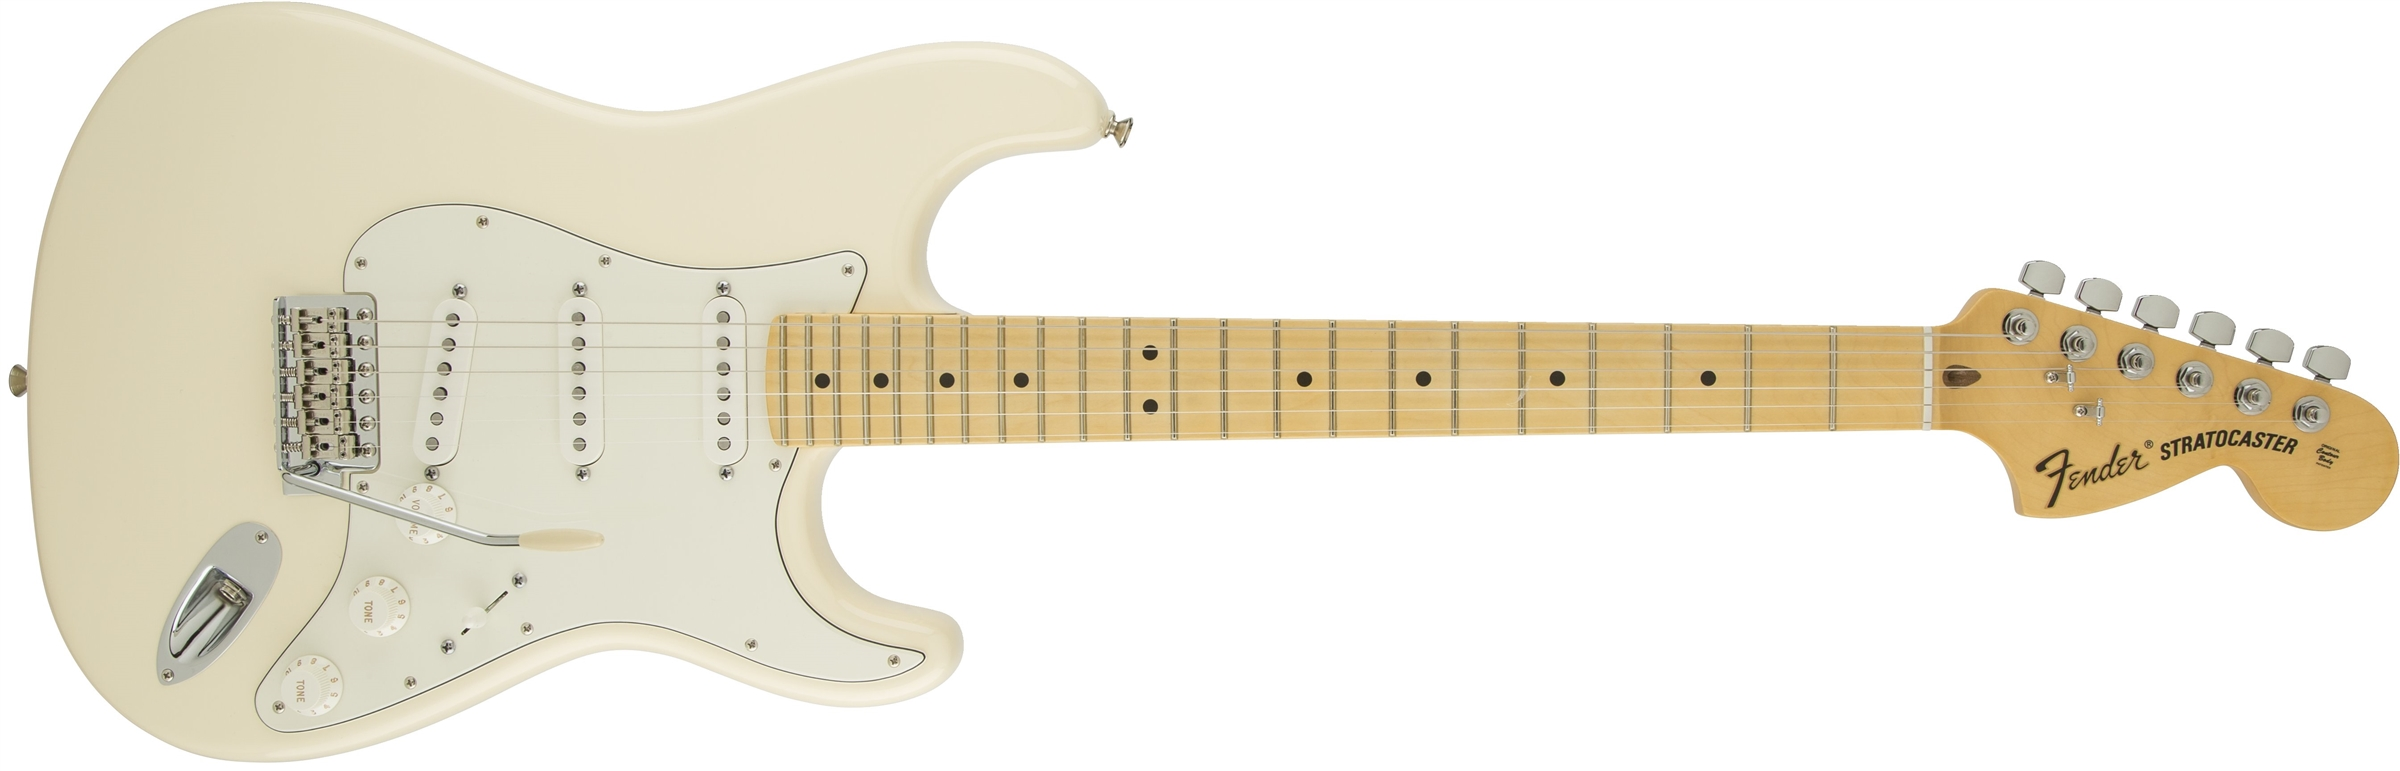 fender american special stratocaster maple fingerboard olympic white. Black Bedroom Furniture Sets. Home Design Ideas